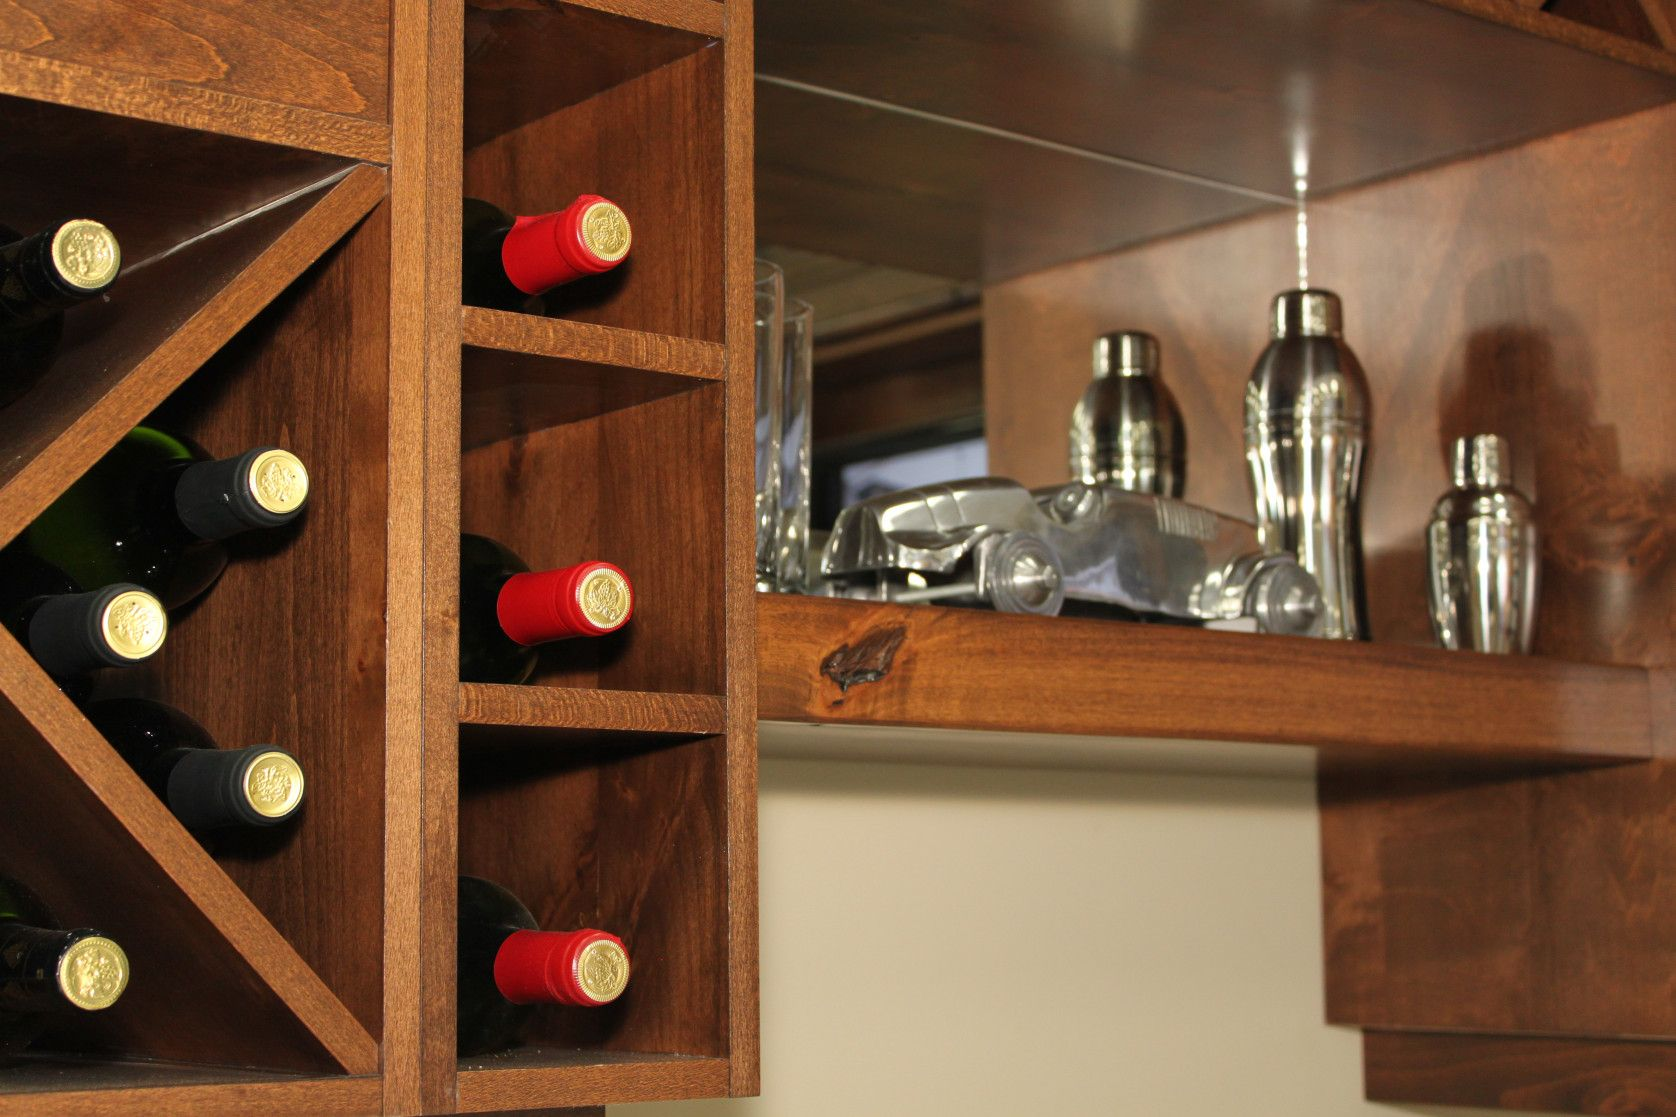 20 Wine Bottle Rack Cabinet Insert Kitchen Decorating Ideas Themes Check More At Http Www Planetgreenspot Com 20 Kitchen Wine Rack Wine Rack Wine Cabinets